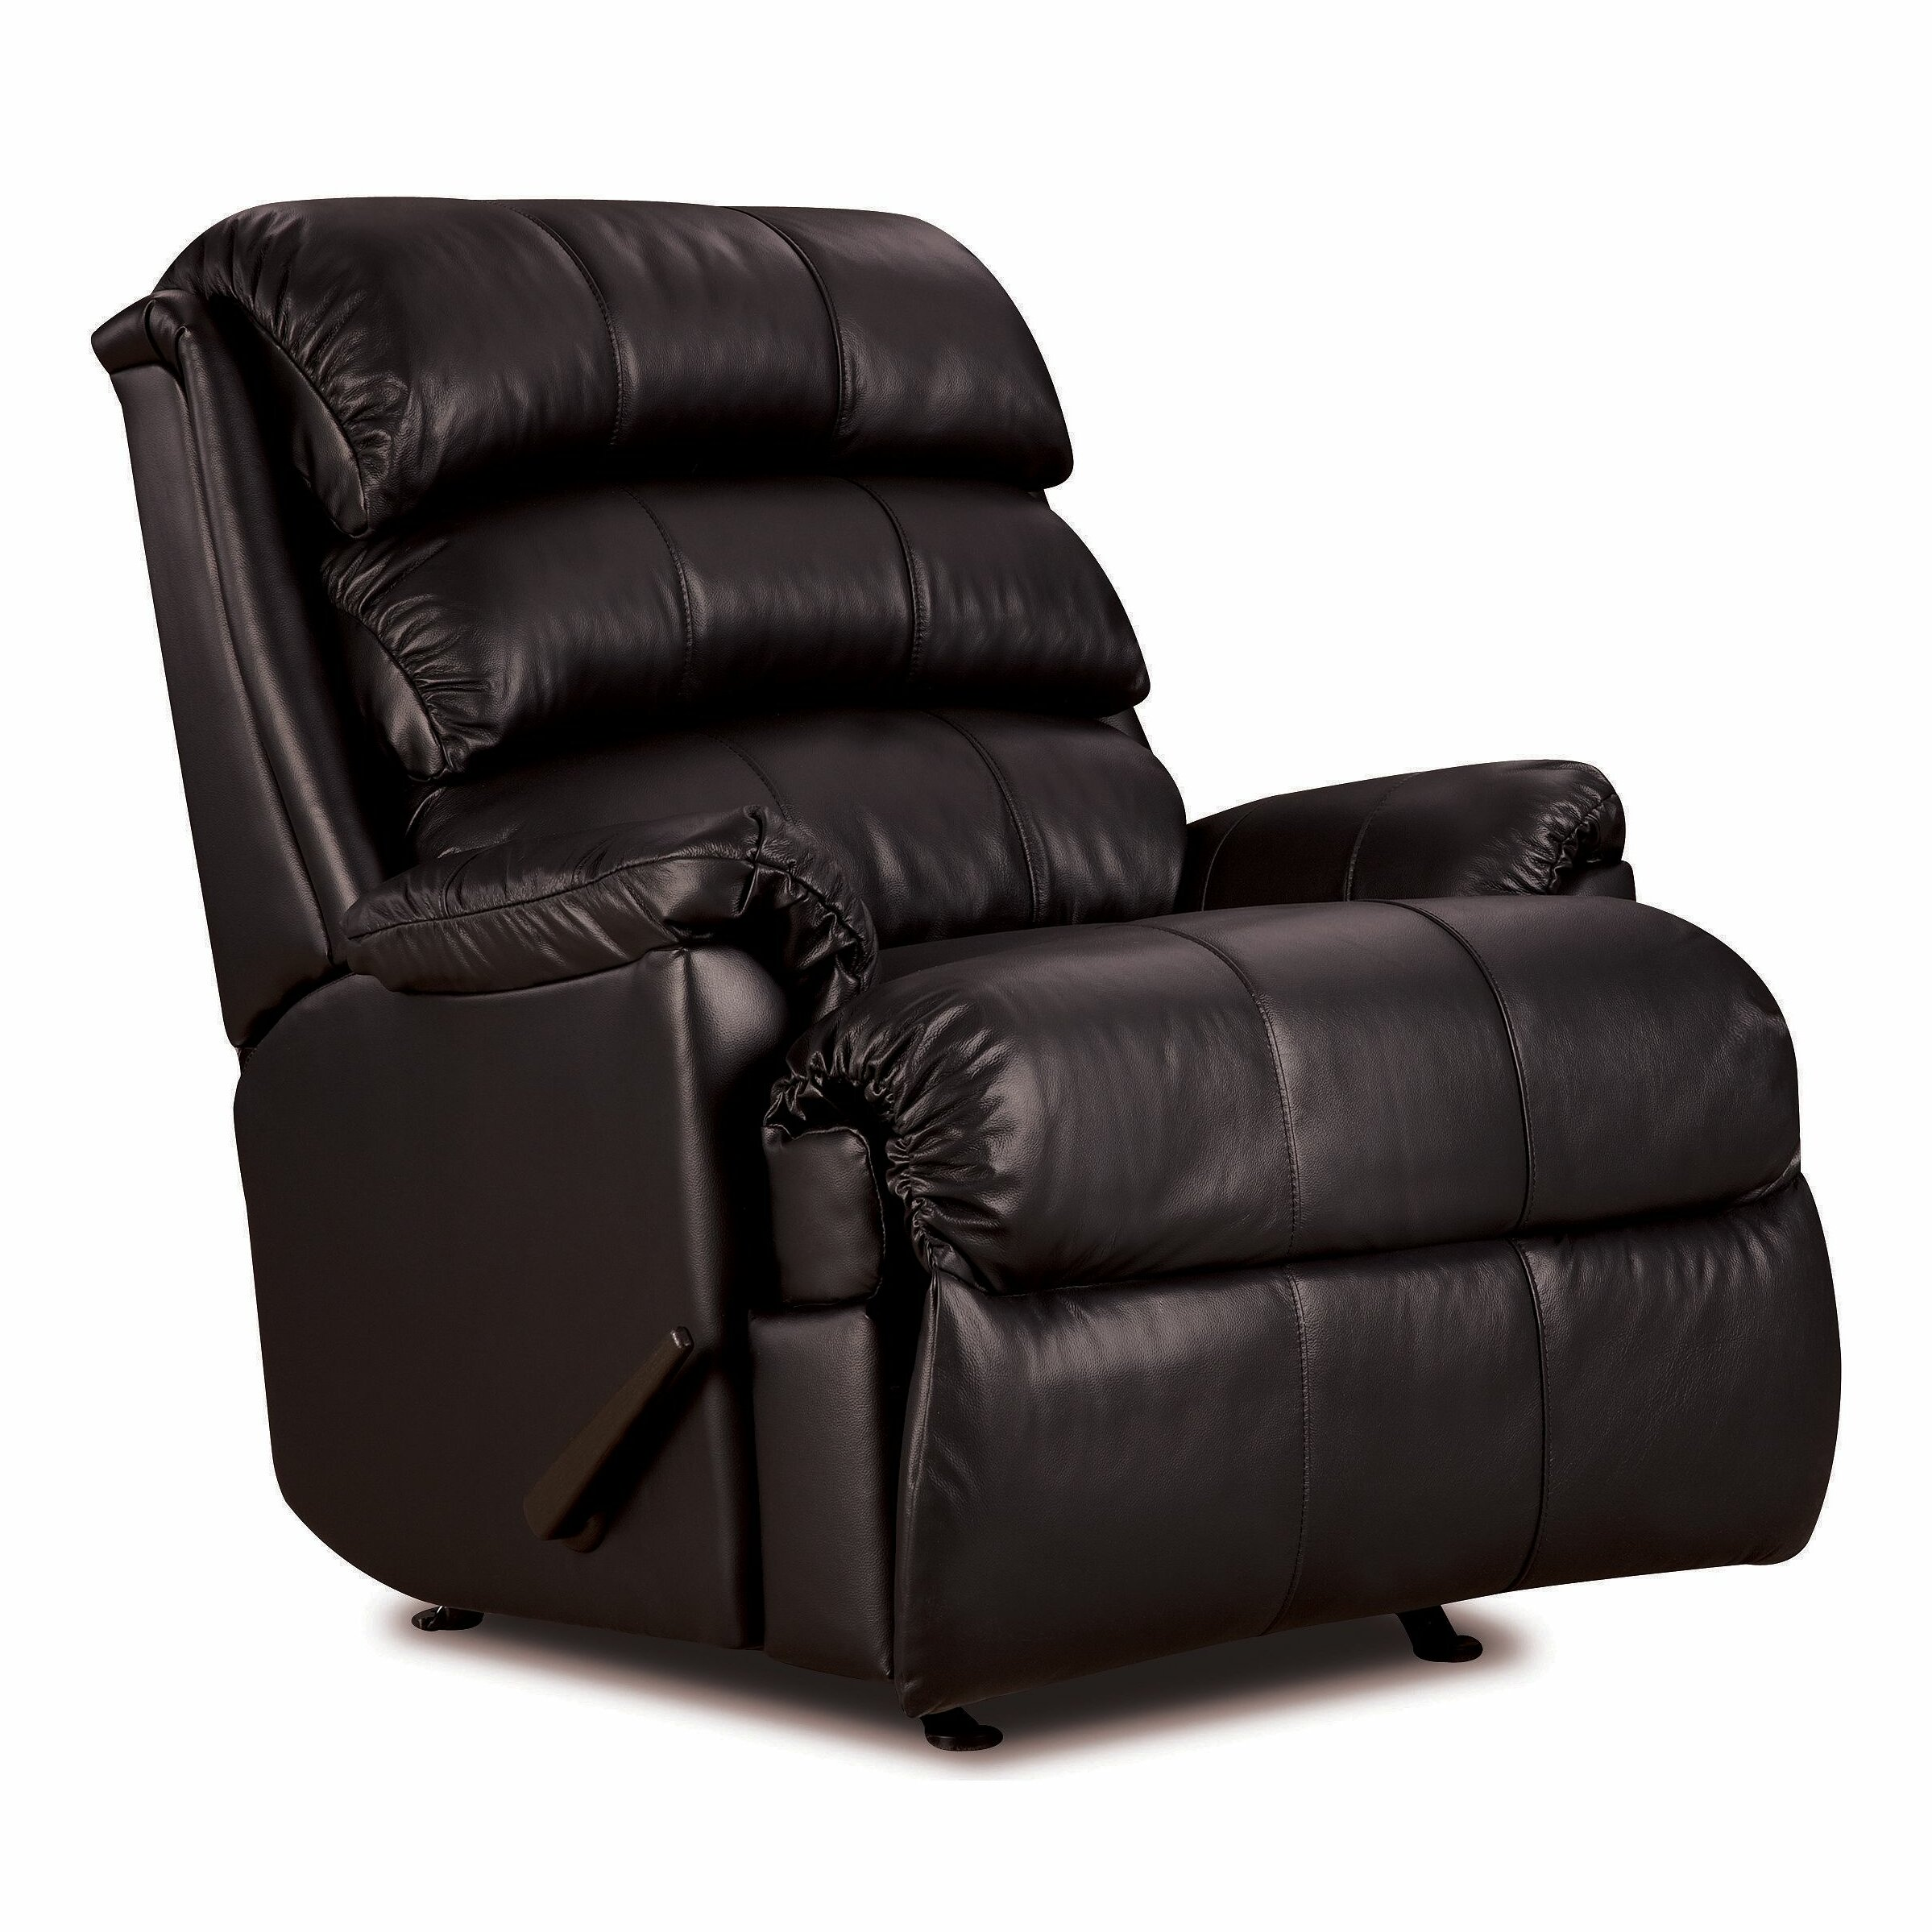 Lane furniture revive power recliner wayfair for Lane furniture